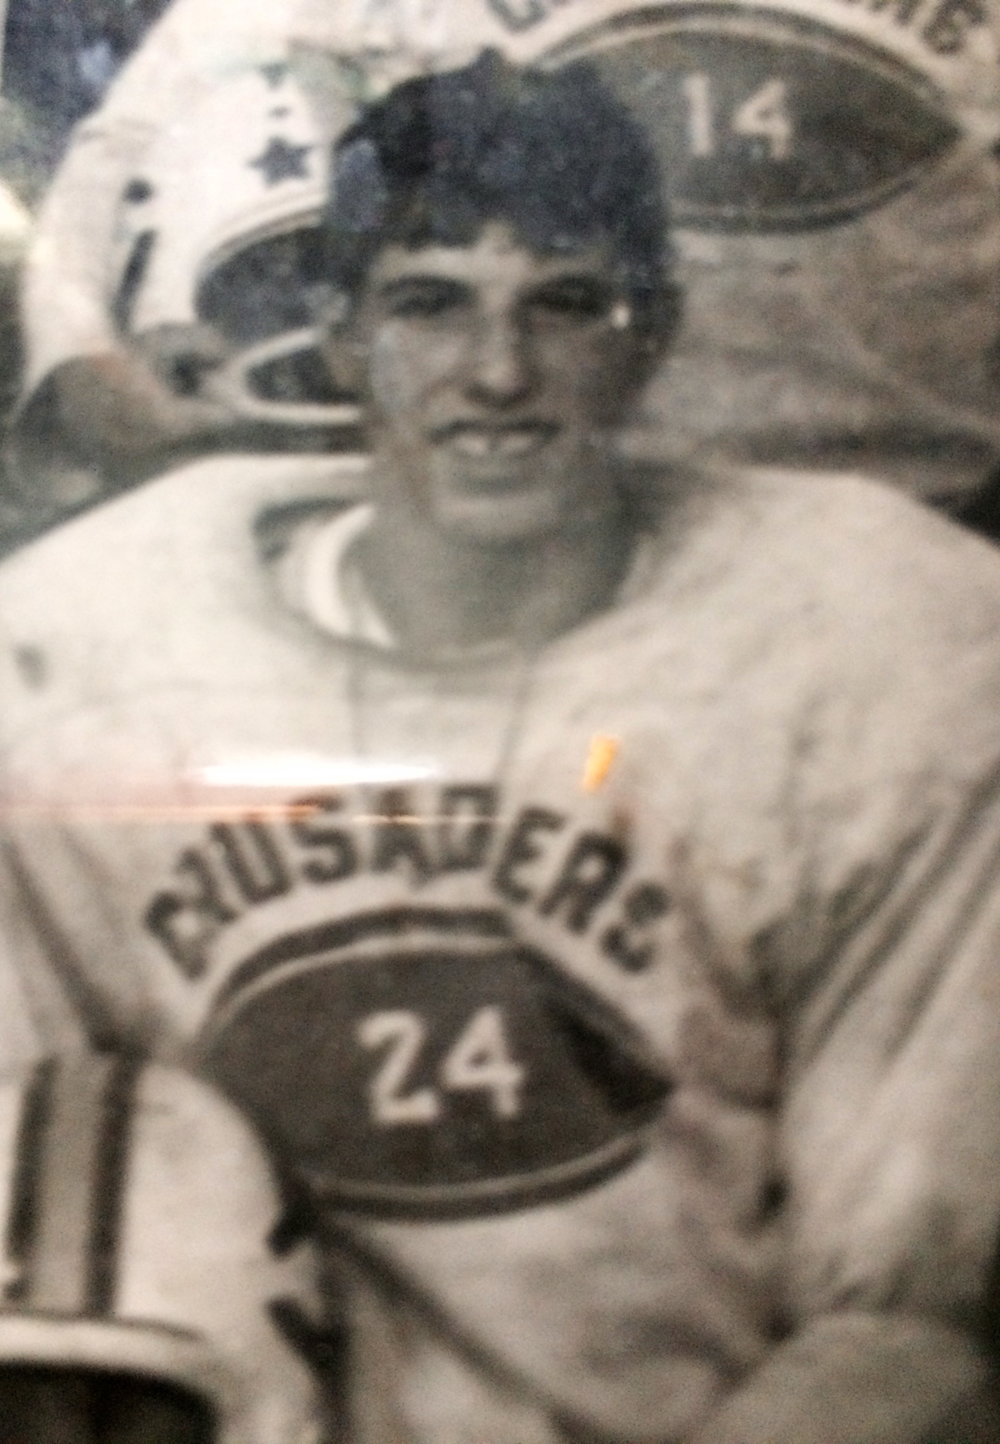 Peter Payack as a halfback of his high school football team in 1966.